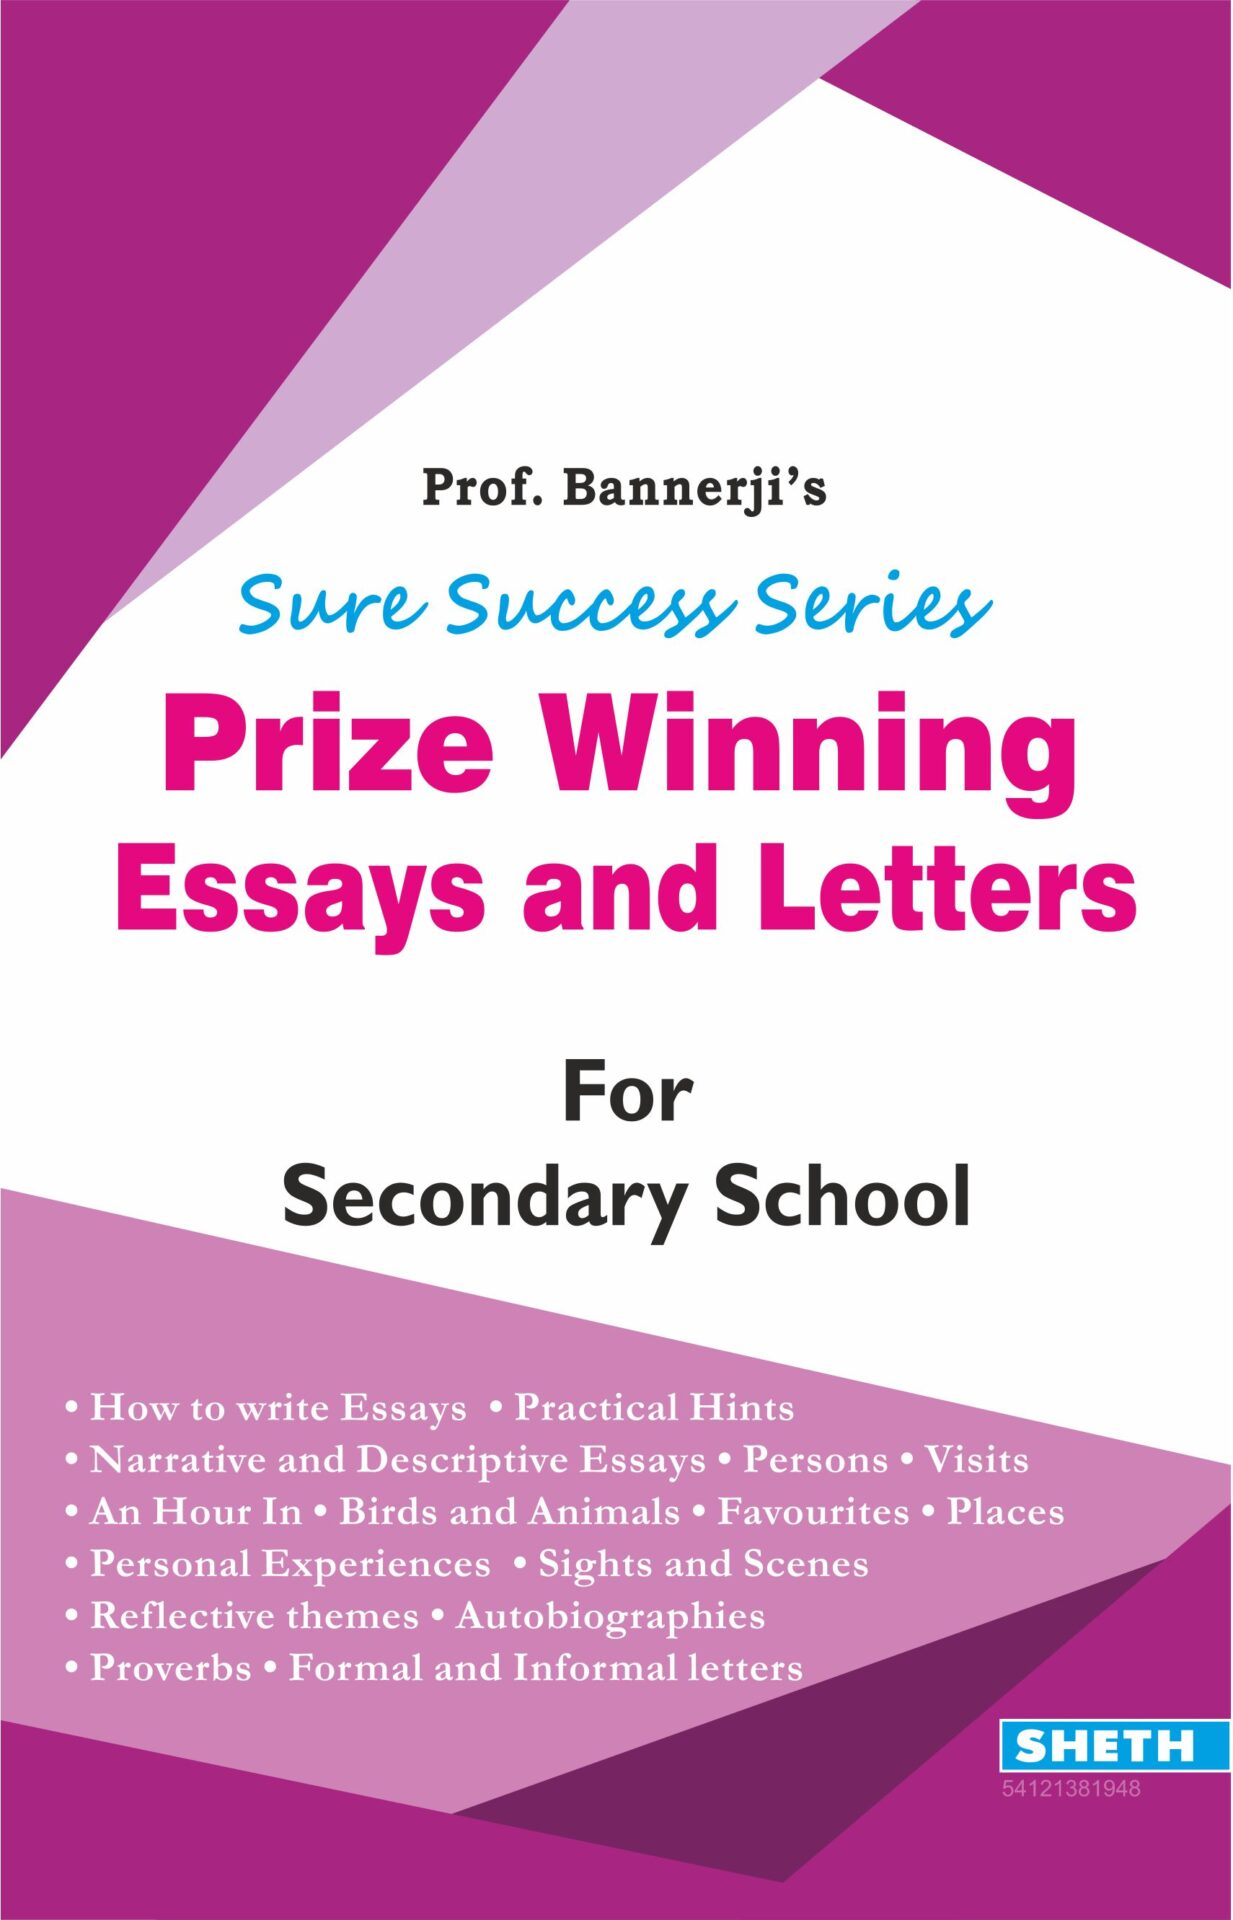 Sure Success Series Prize Winning Essays and Letters for Secondary School 1